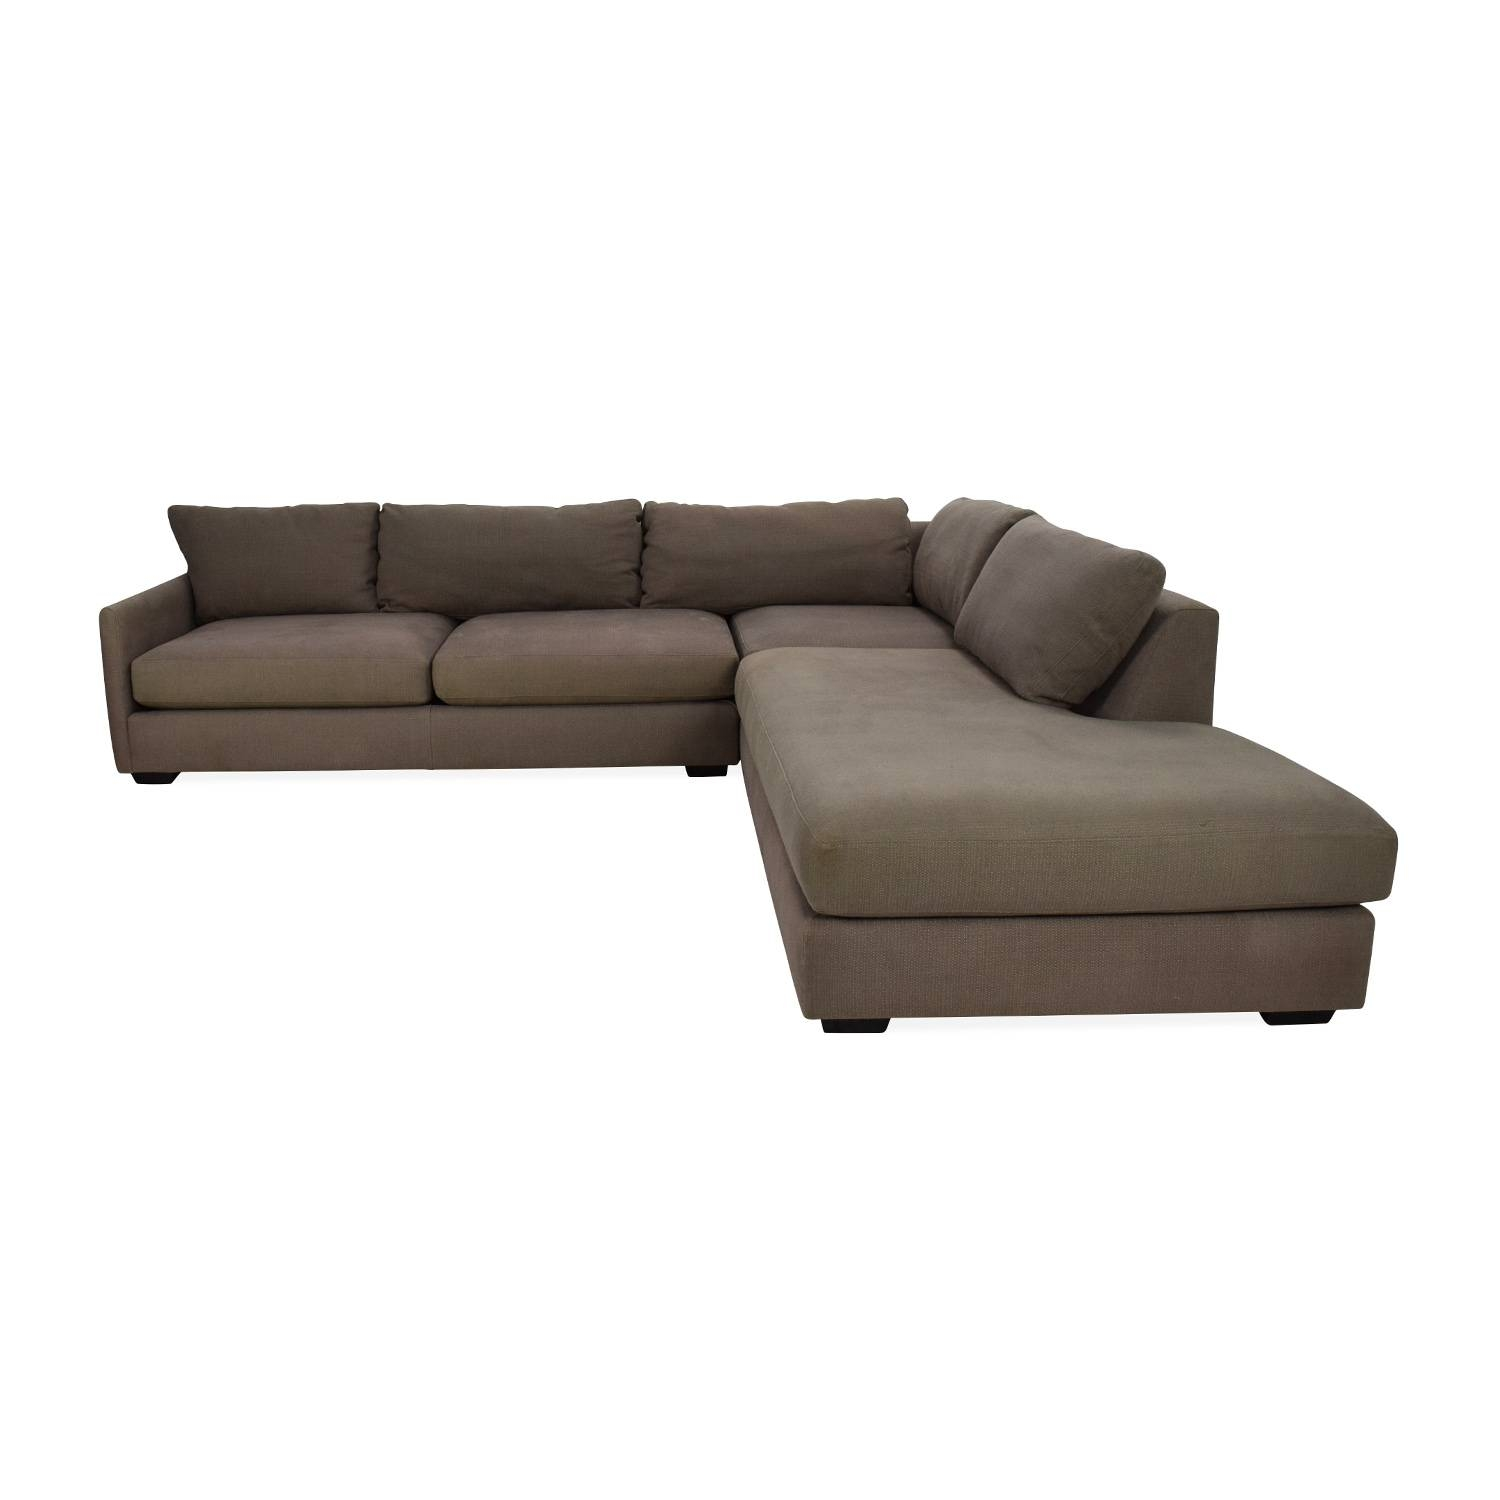 49% Off - Bloomingdale's Bloomingdale's Brown Corner Sectional / Sofas within Crate And Barrel Sleeper Sofas (Image 2 of 15)